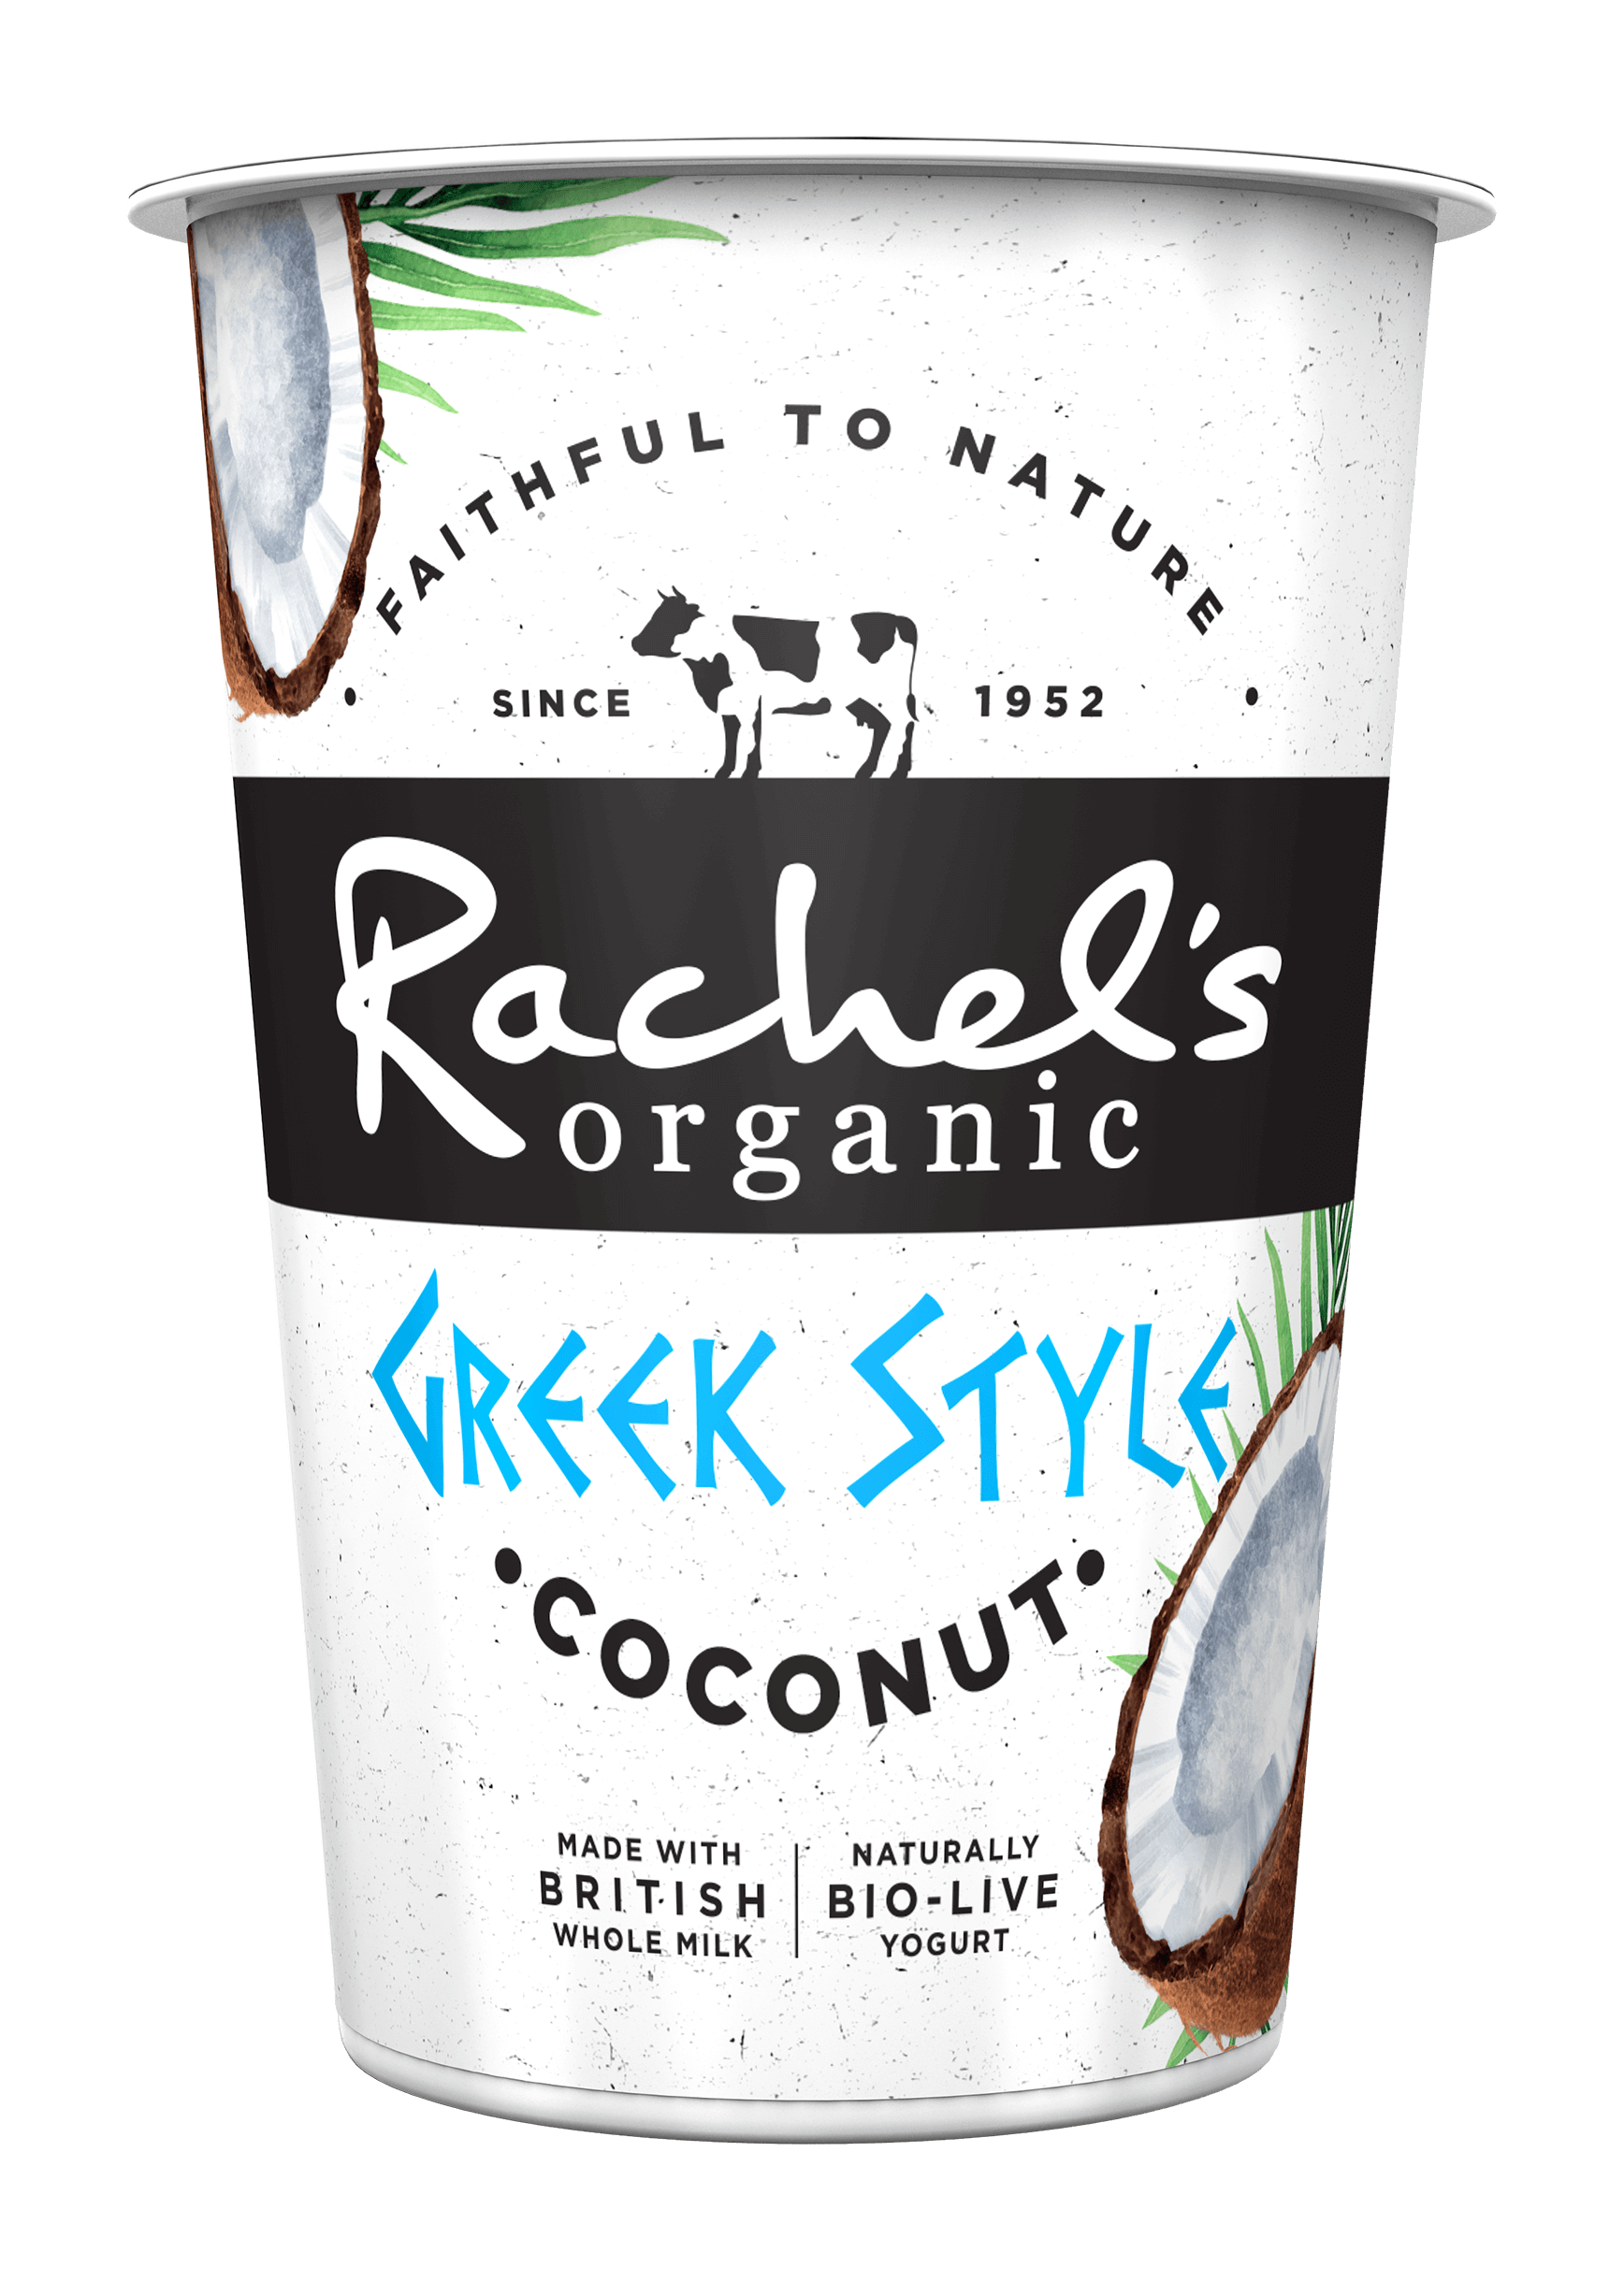 https://www.rachelsorganic.co.uk/wp-content/uploads/2019/06/5021638116753-3D-RACHELS-450G-POT-GREEK-STYLE-COCONUT.png